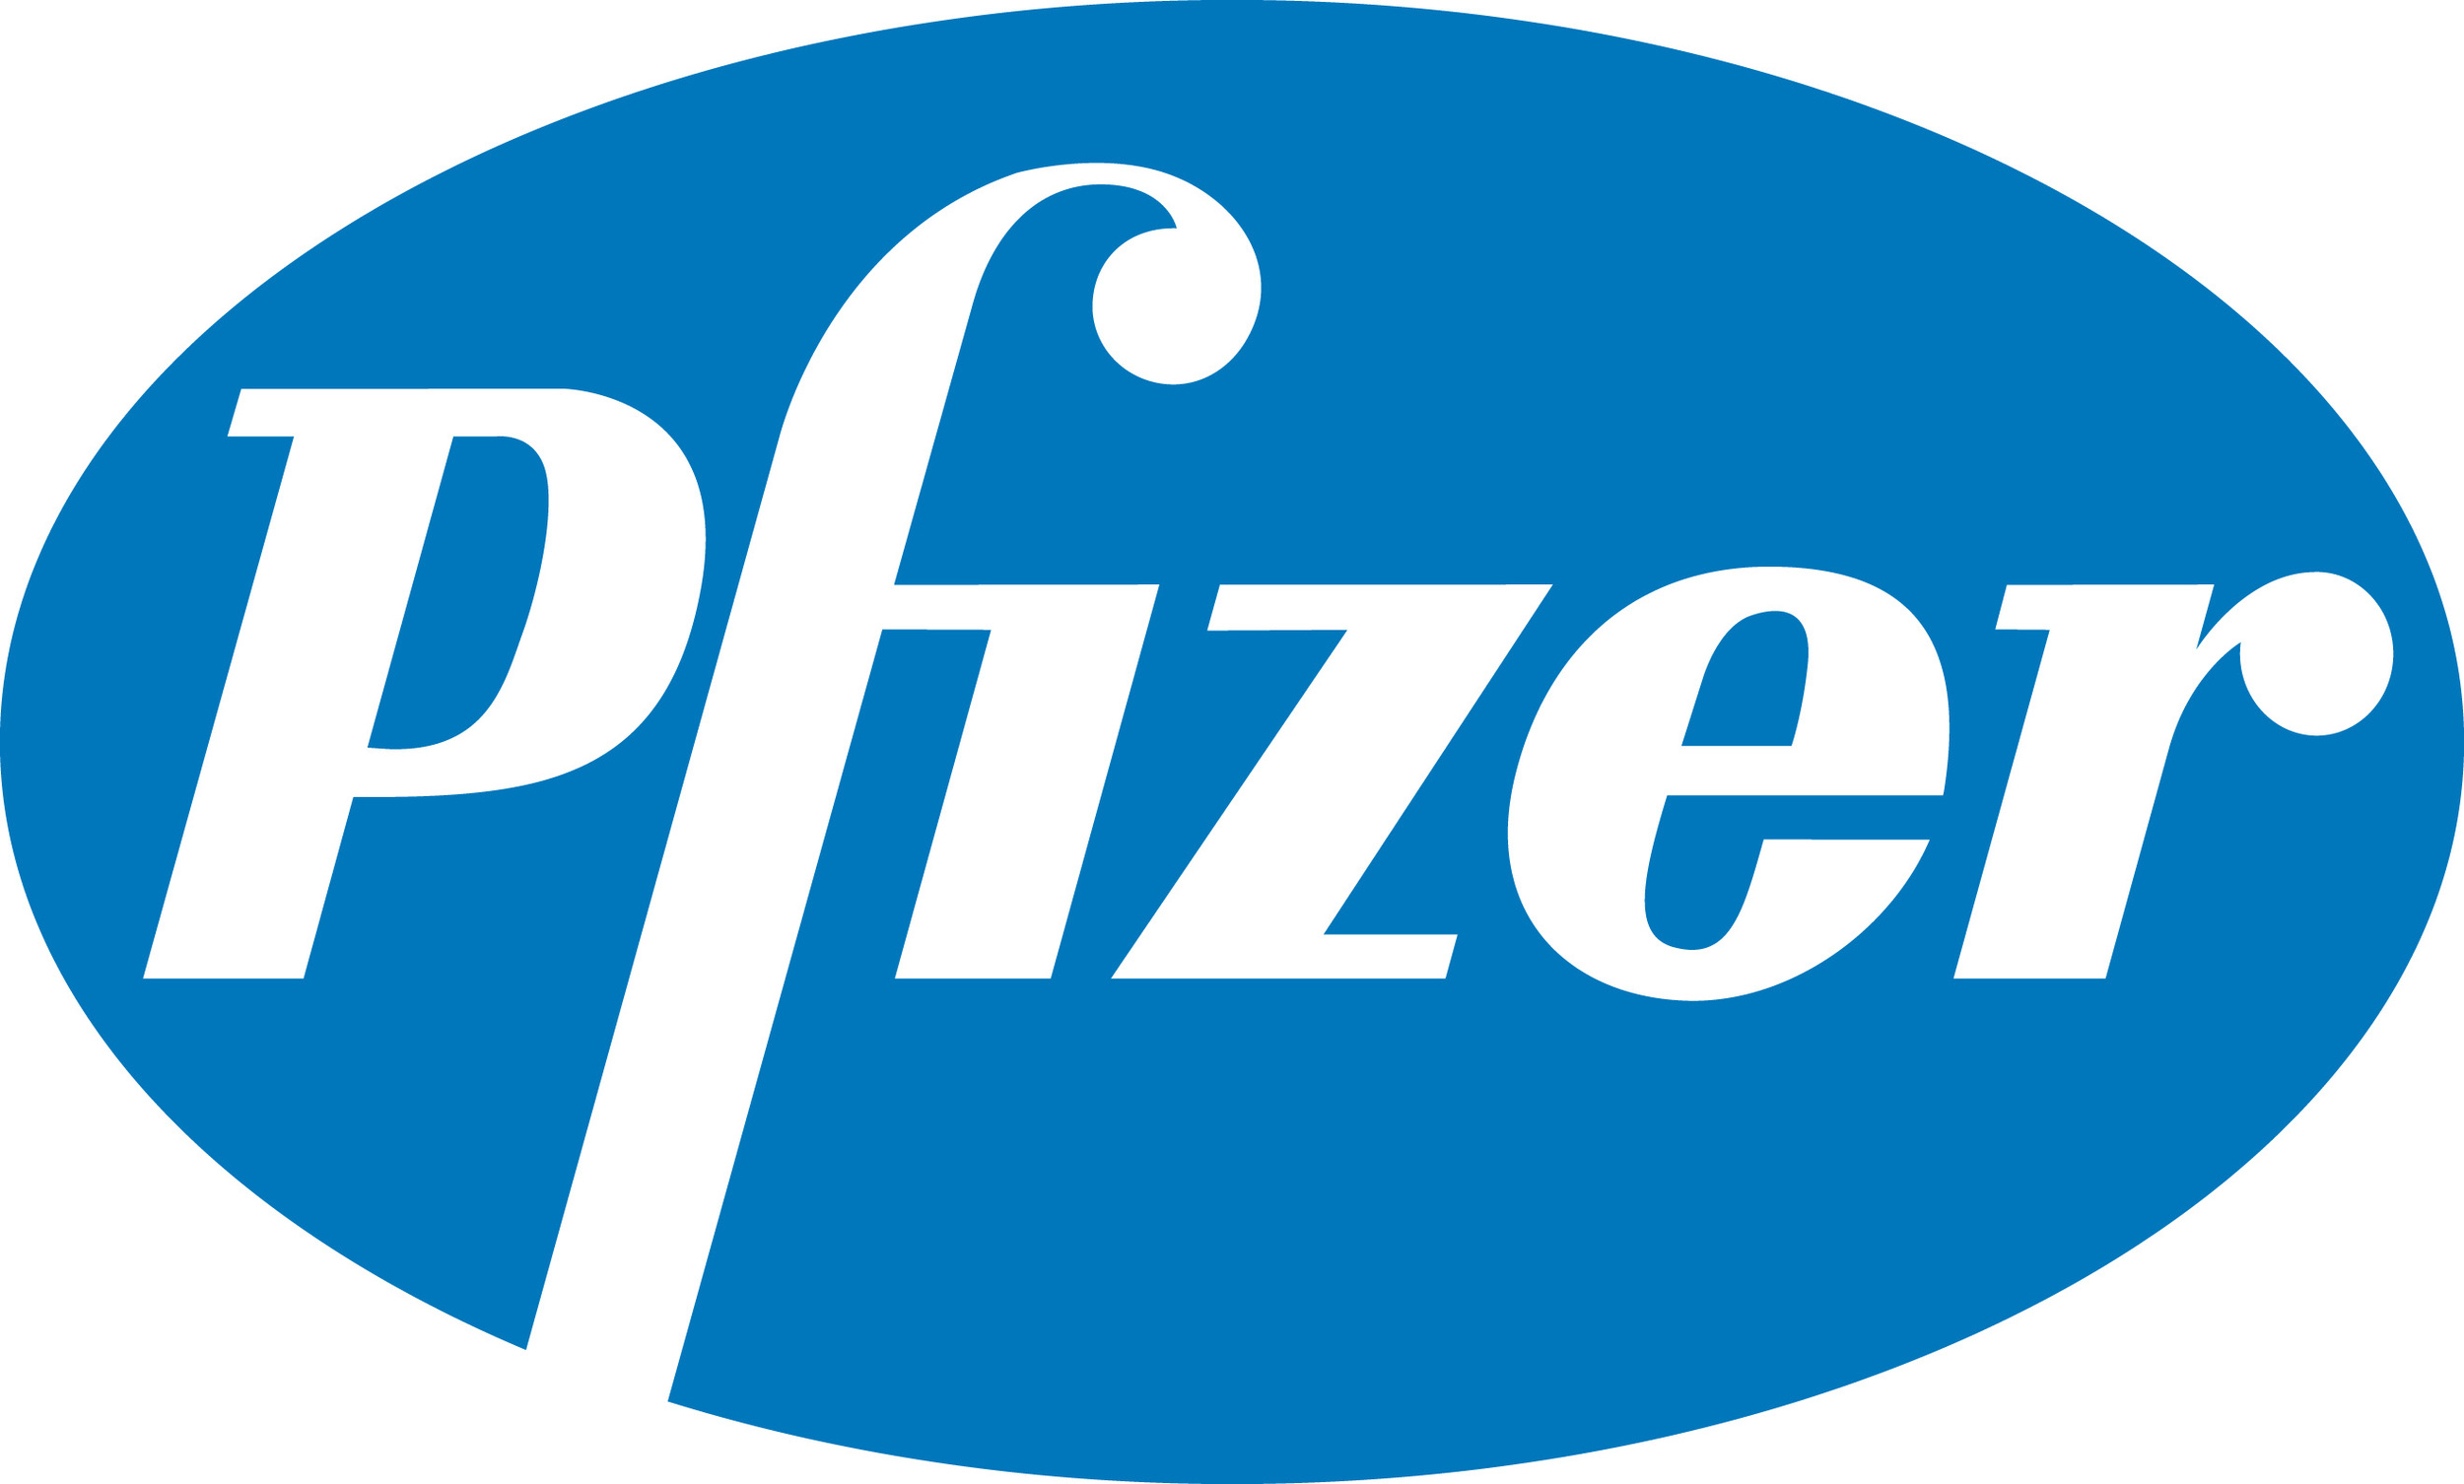 First Incentive Travel client Pfizer